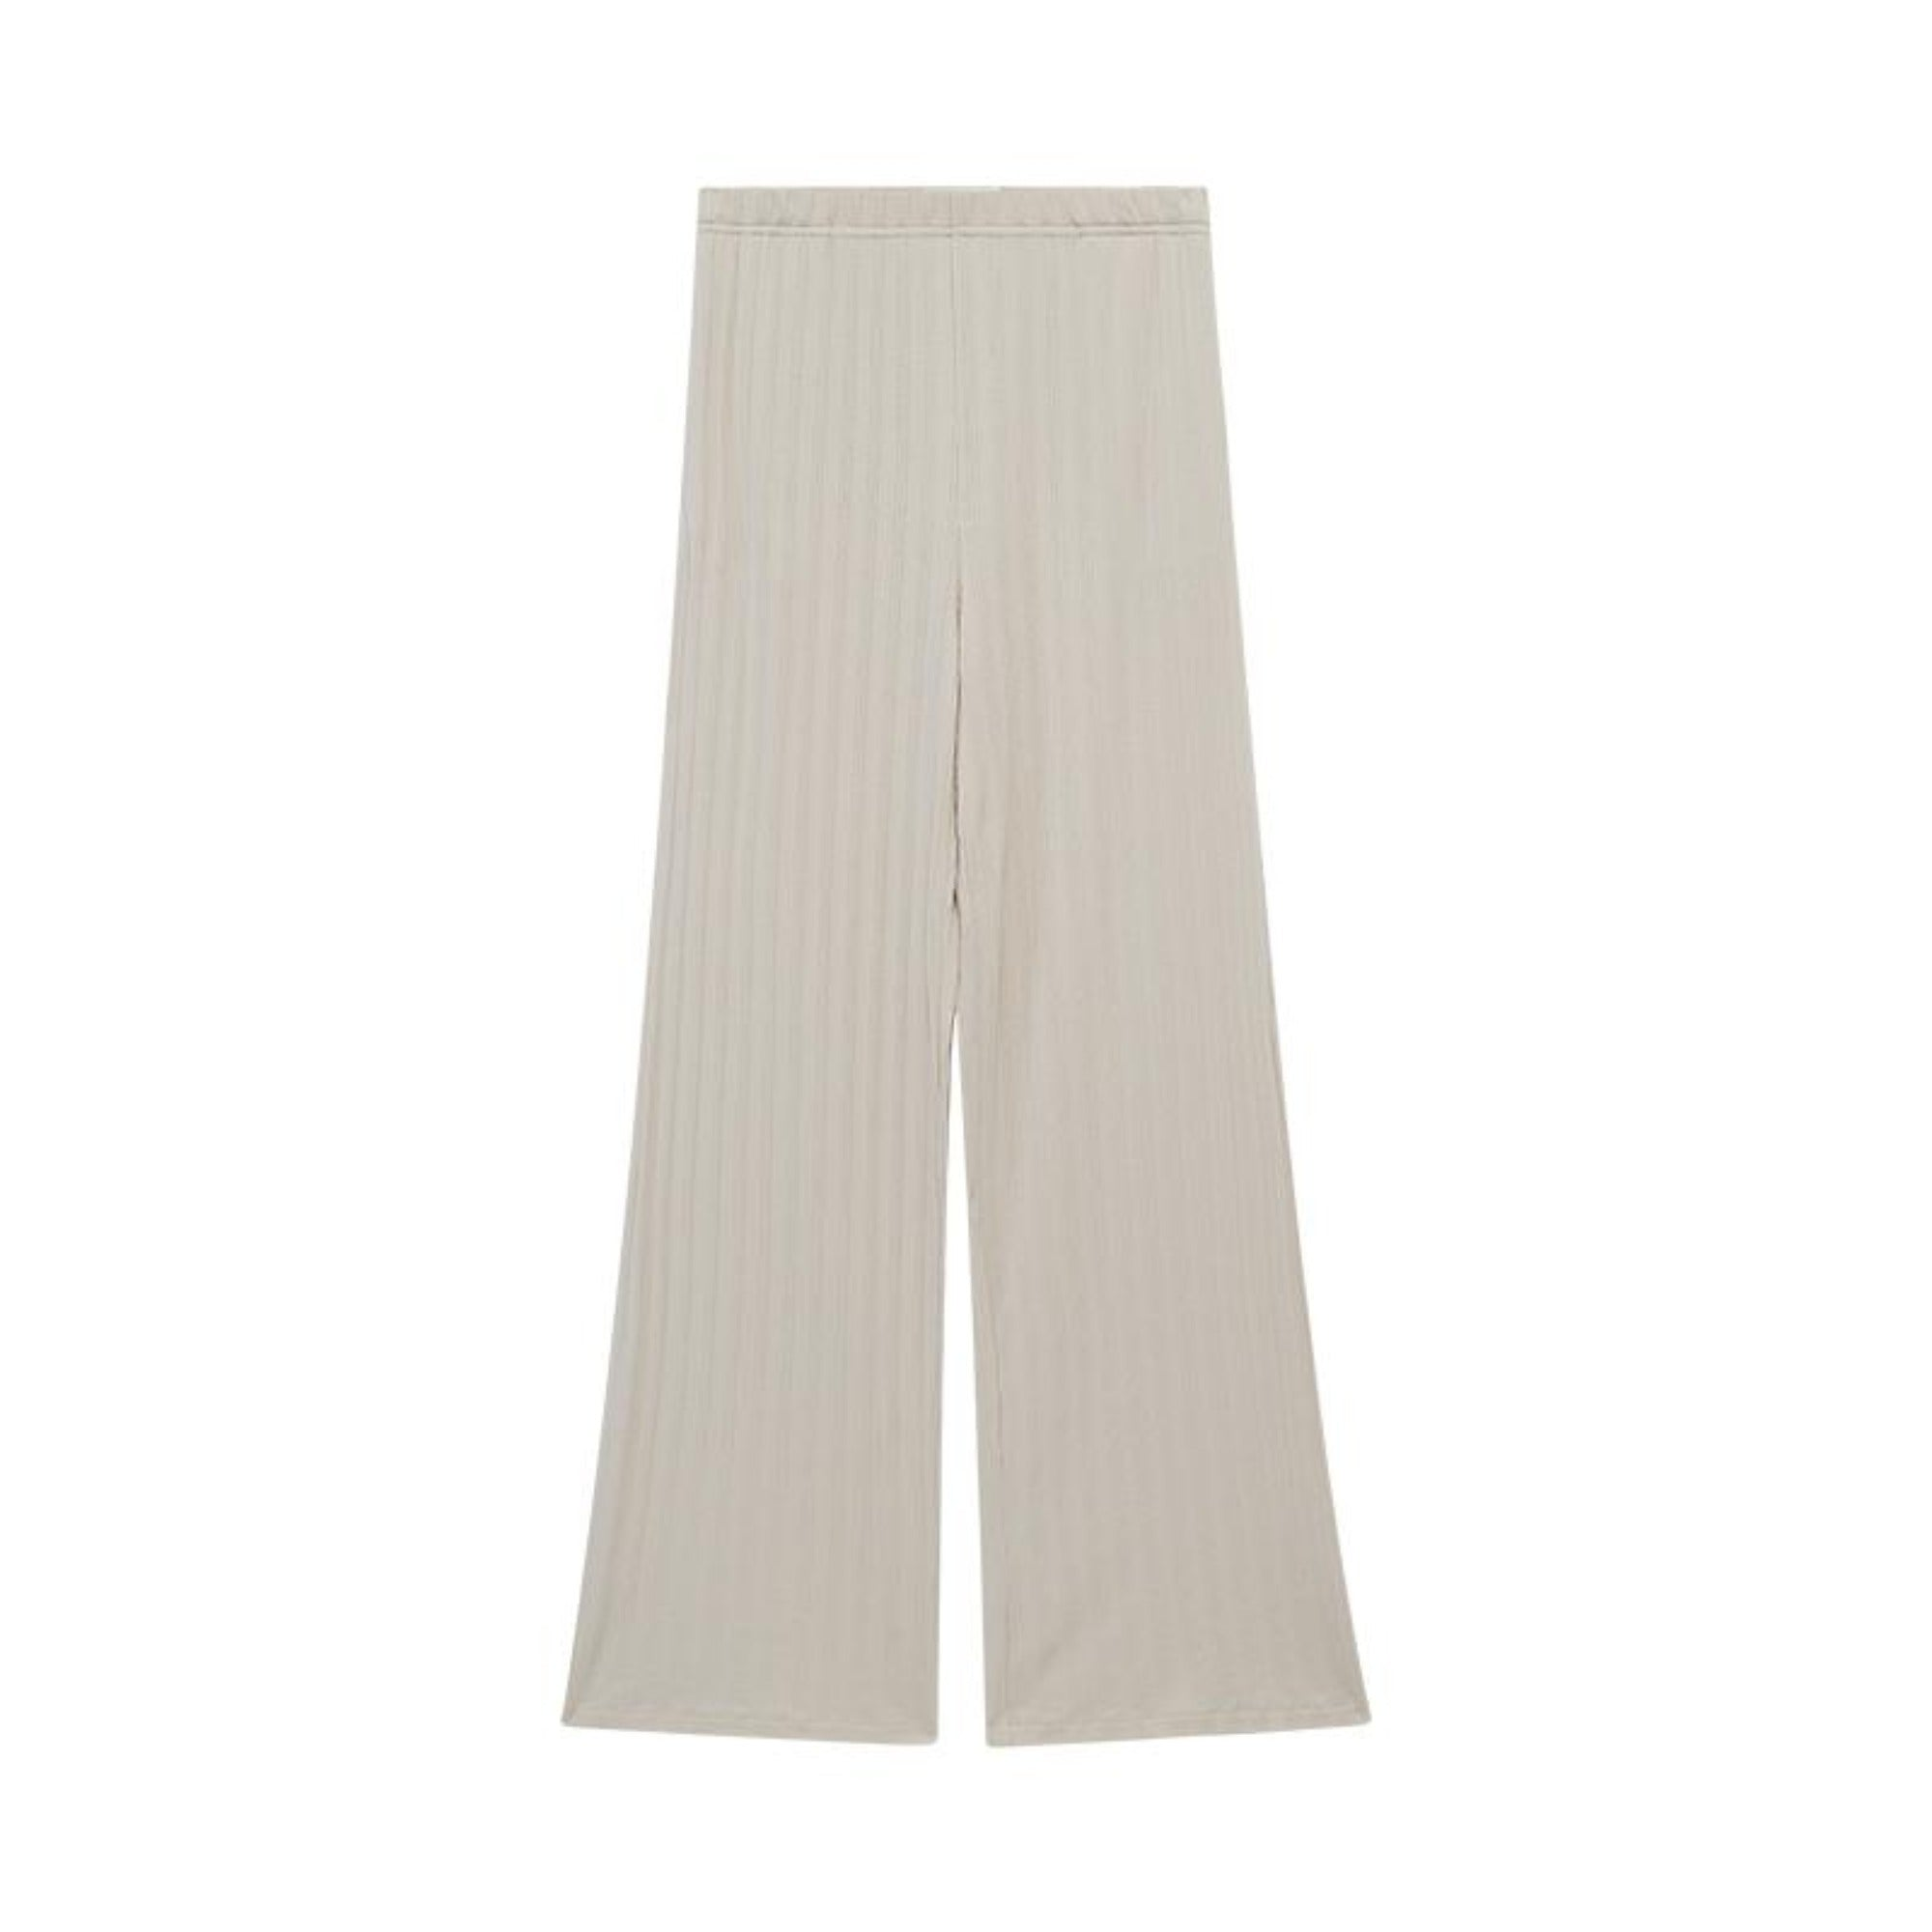 NEIWAI's Laid Back Ribbed Lounge Pants in Soft Pink.